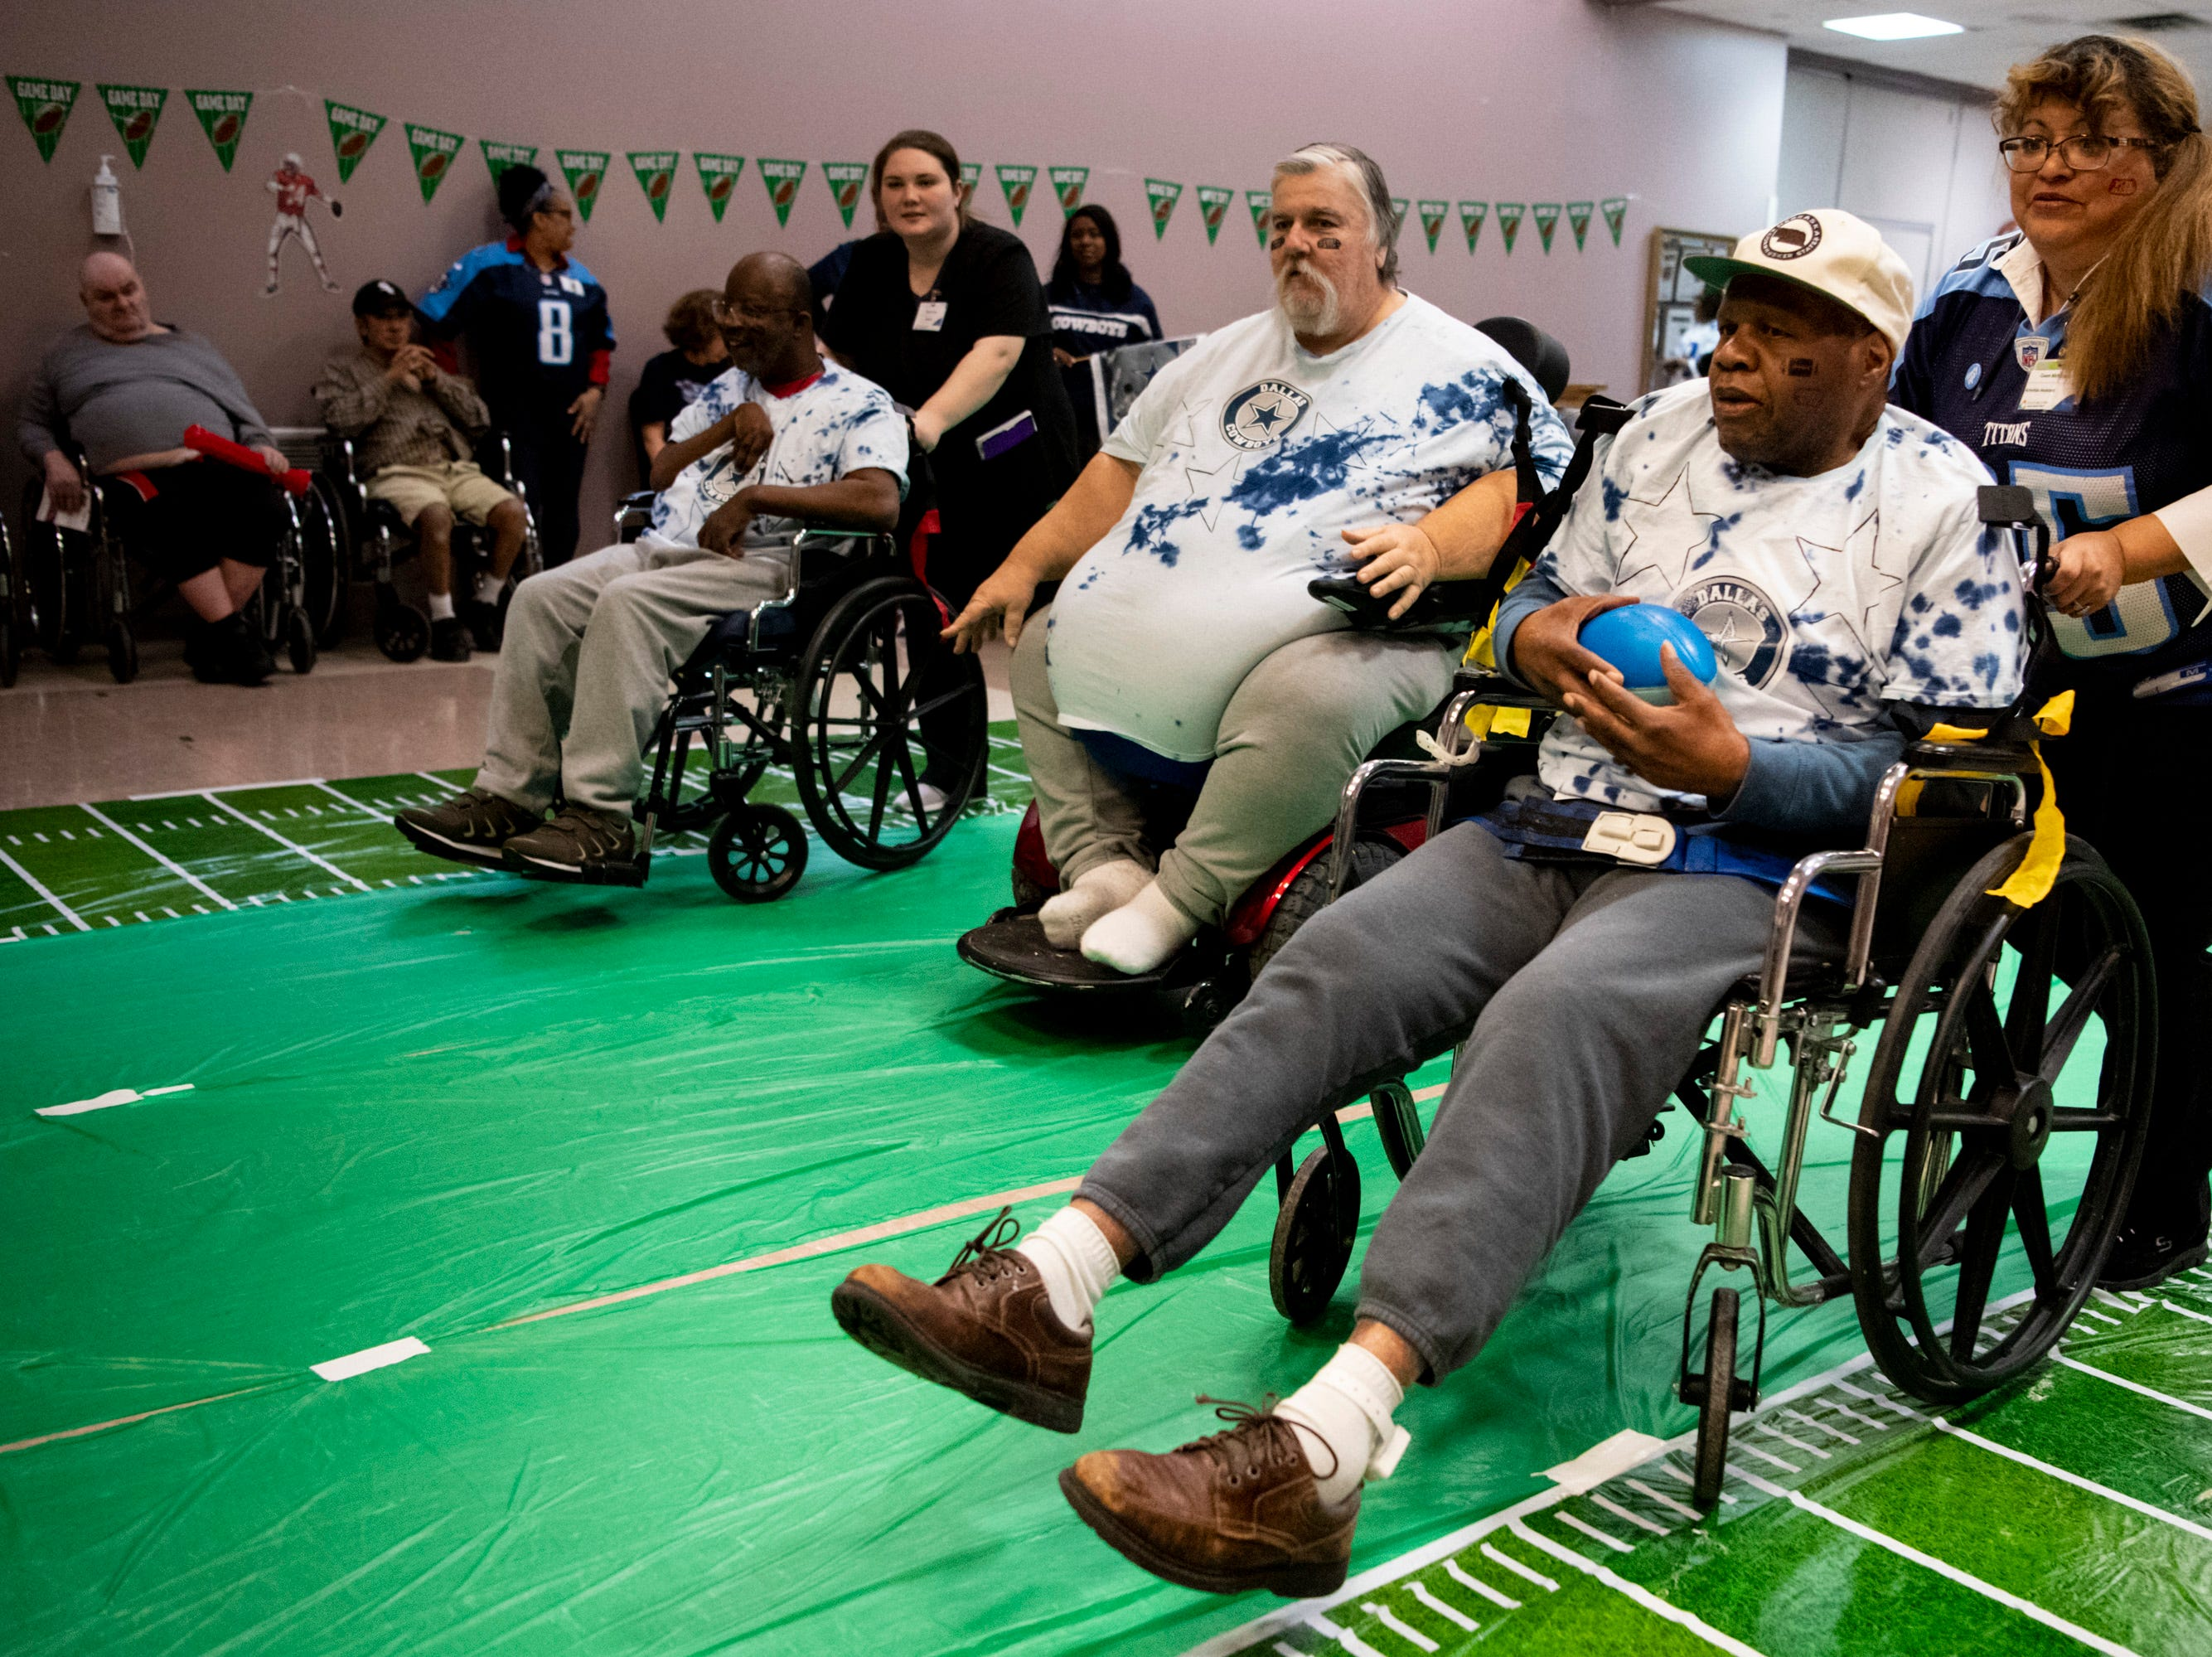 Nevel Blakemore advances with the ball with the aid of activities assistant Gwen McKissack during the Wheelchair Super Bowl at Nashville Community Care and Rehabilitation at Bordeaux in Nashville, Tenn., Friday, Feb. 1, 2019.